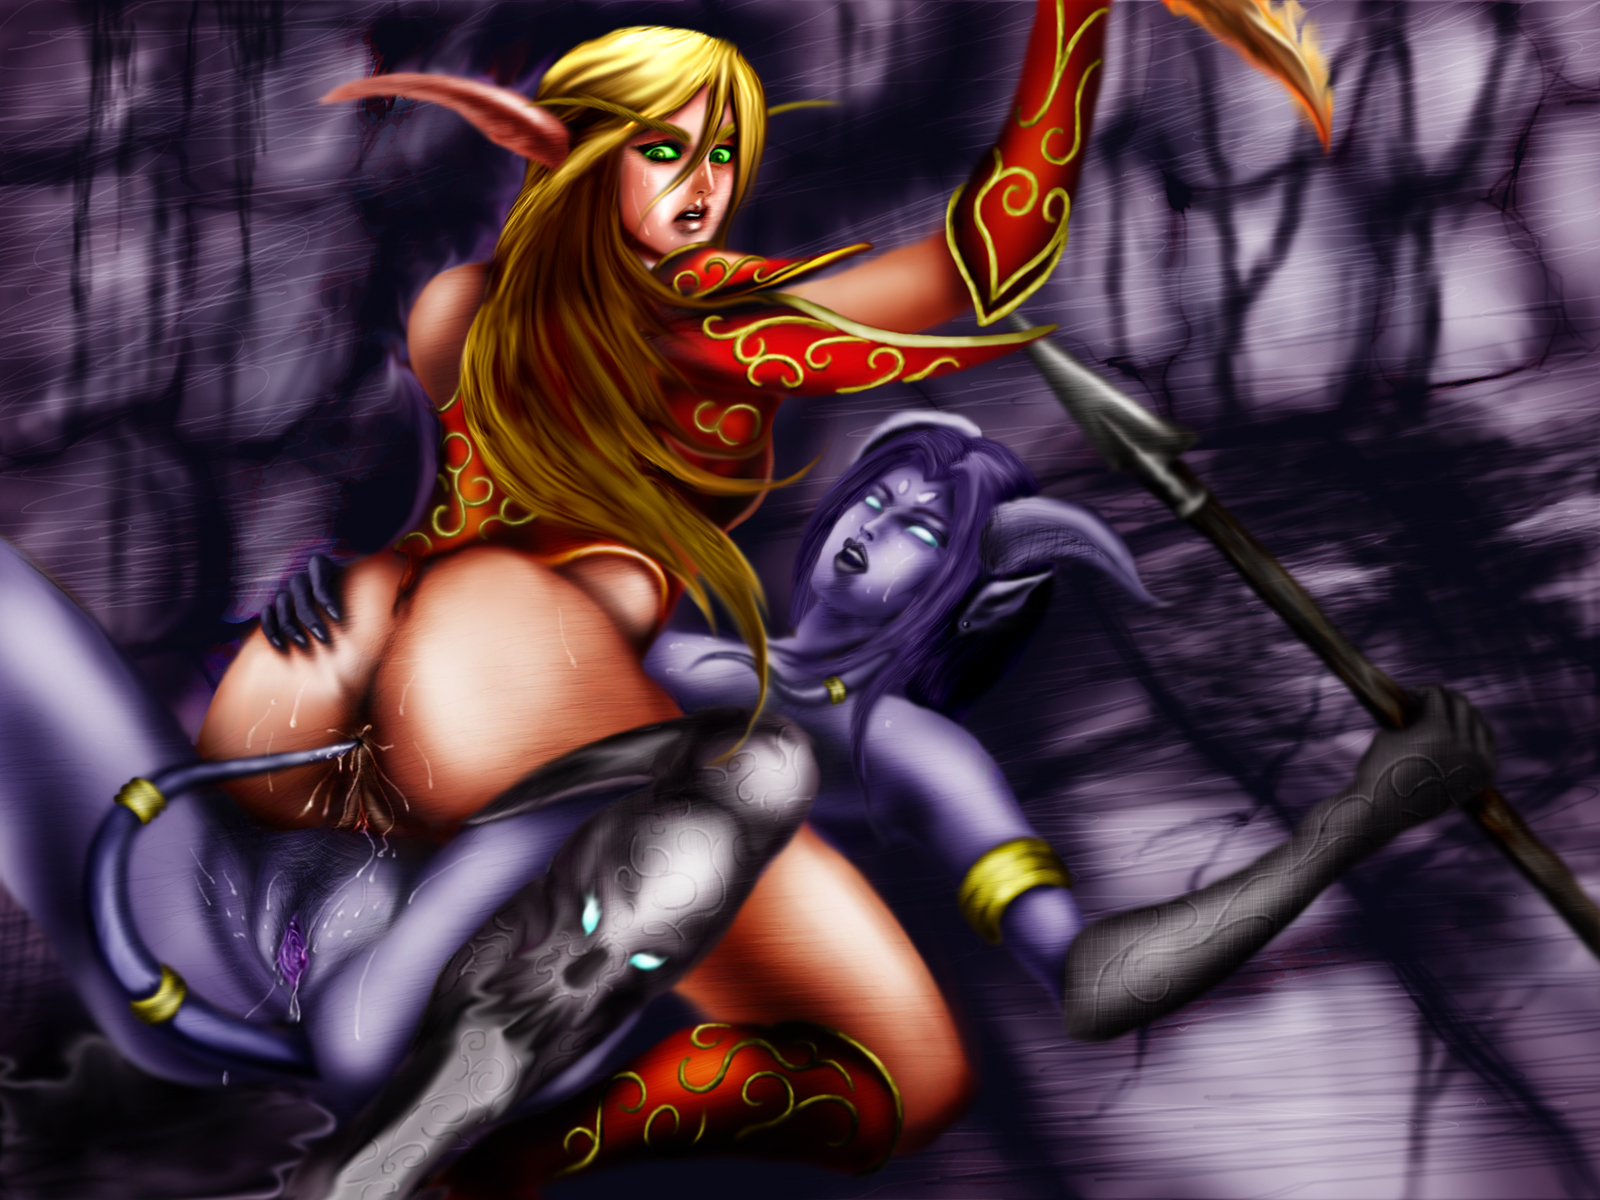 Warcraft sexy female elves images naked queen